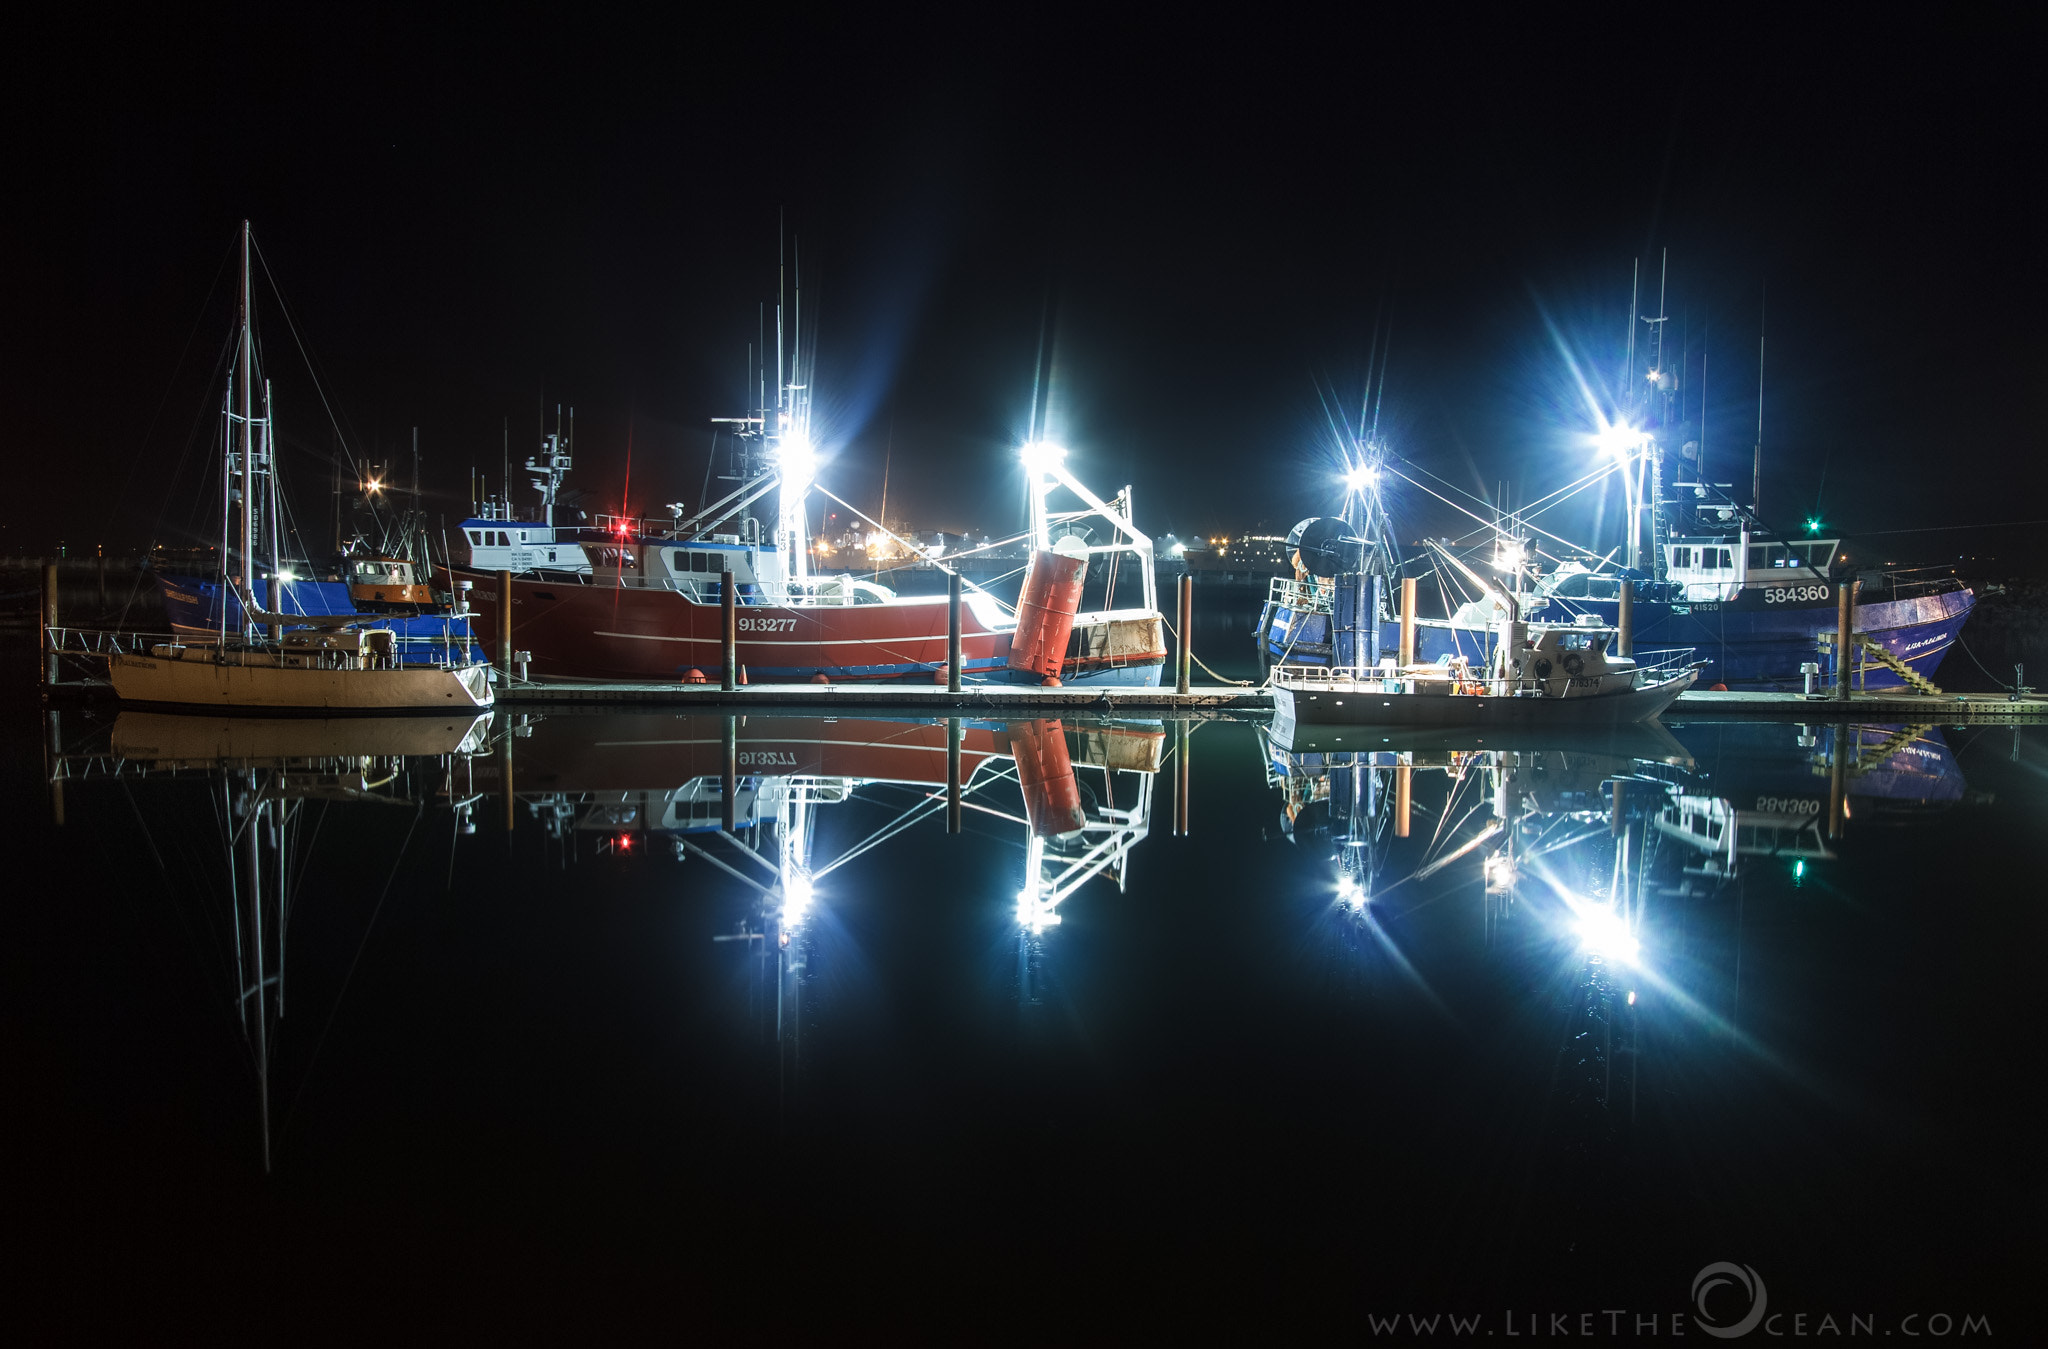 Photograph Reflections at the Dock by Sathya R on 500px